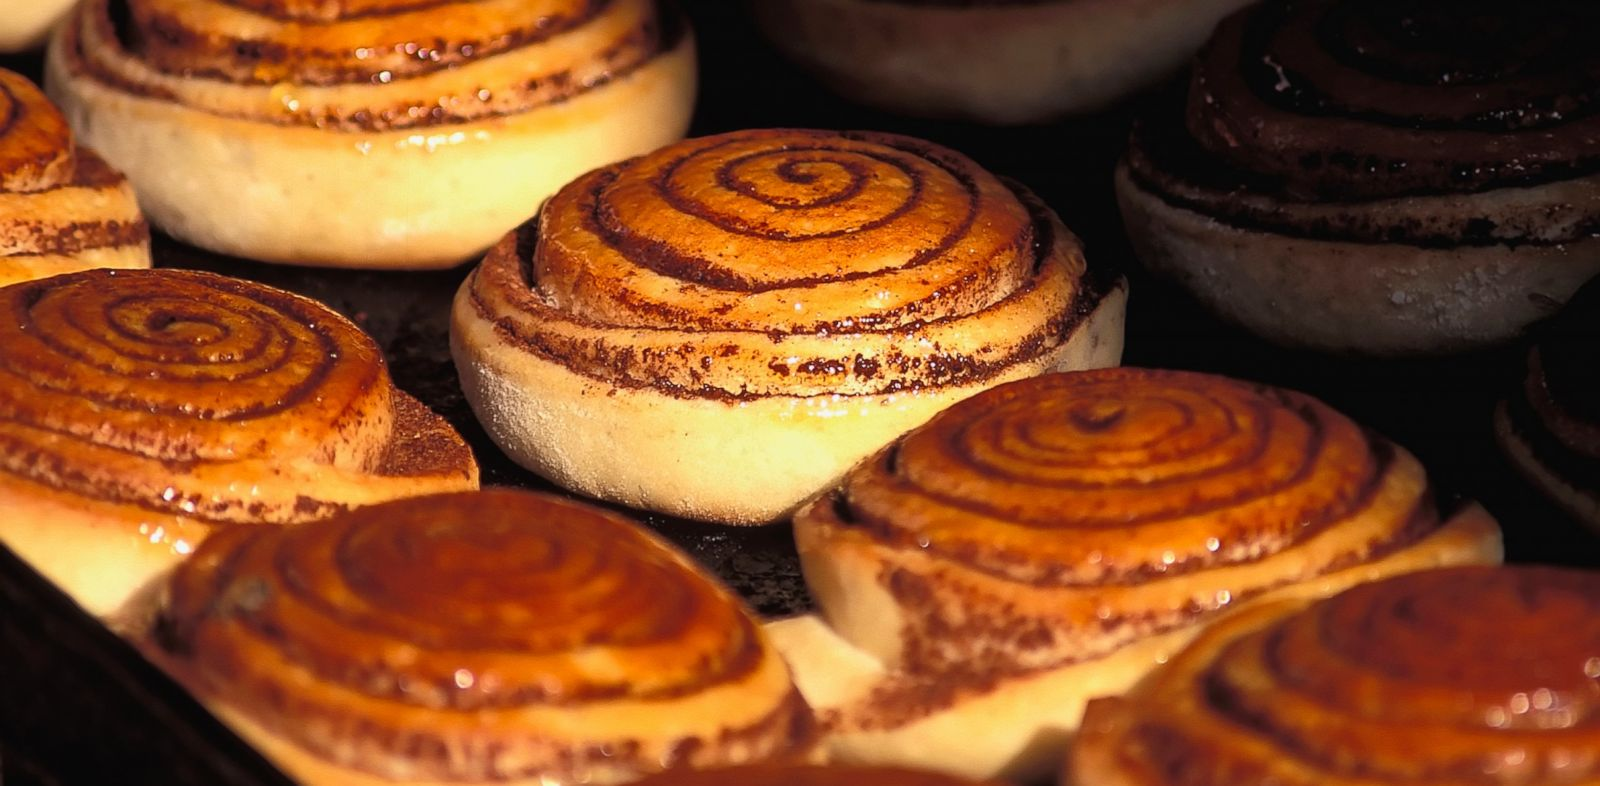 PHOTO: Traditional Danish cinnamon rolls contain an excess of a compound found in the cinnamon, according to a study.